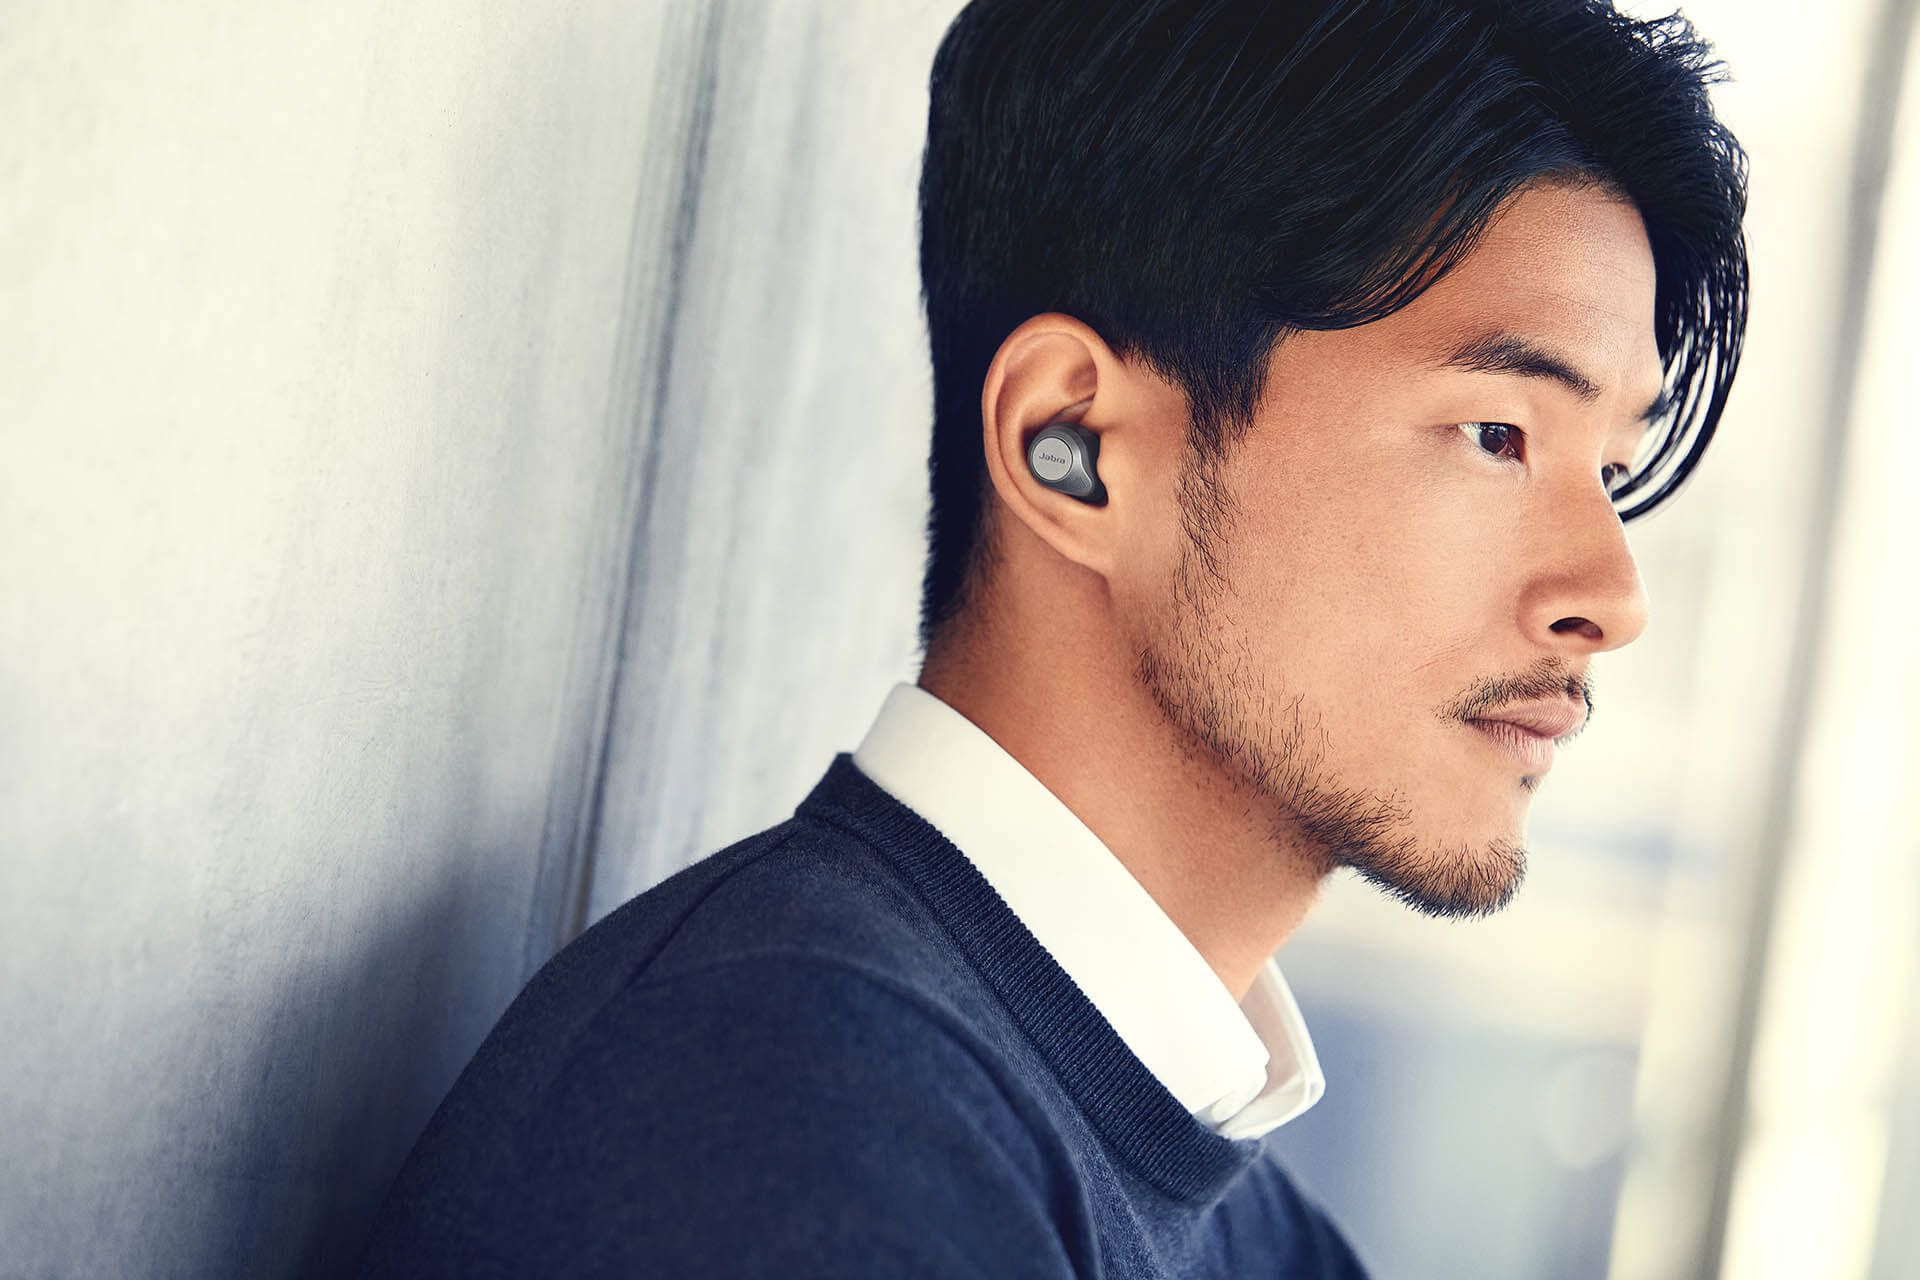 True wireless earbuds with fully adjustable ANC | Jabra Elite 85t